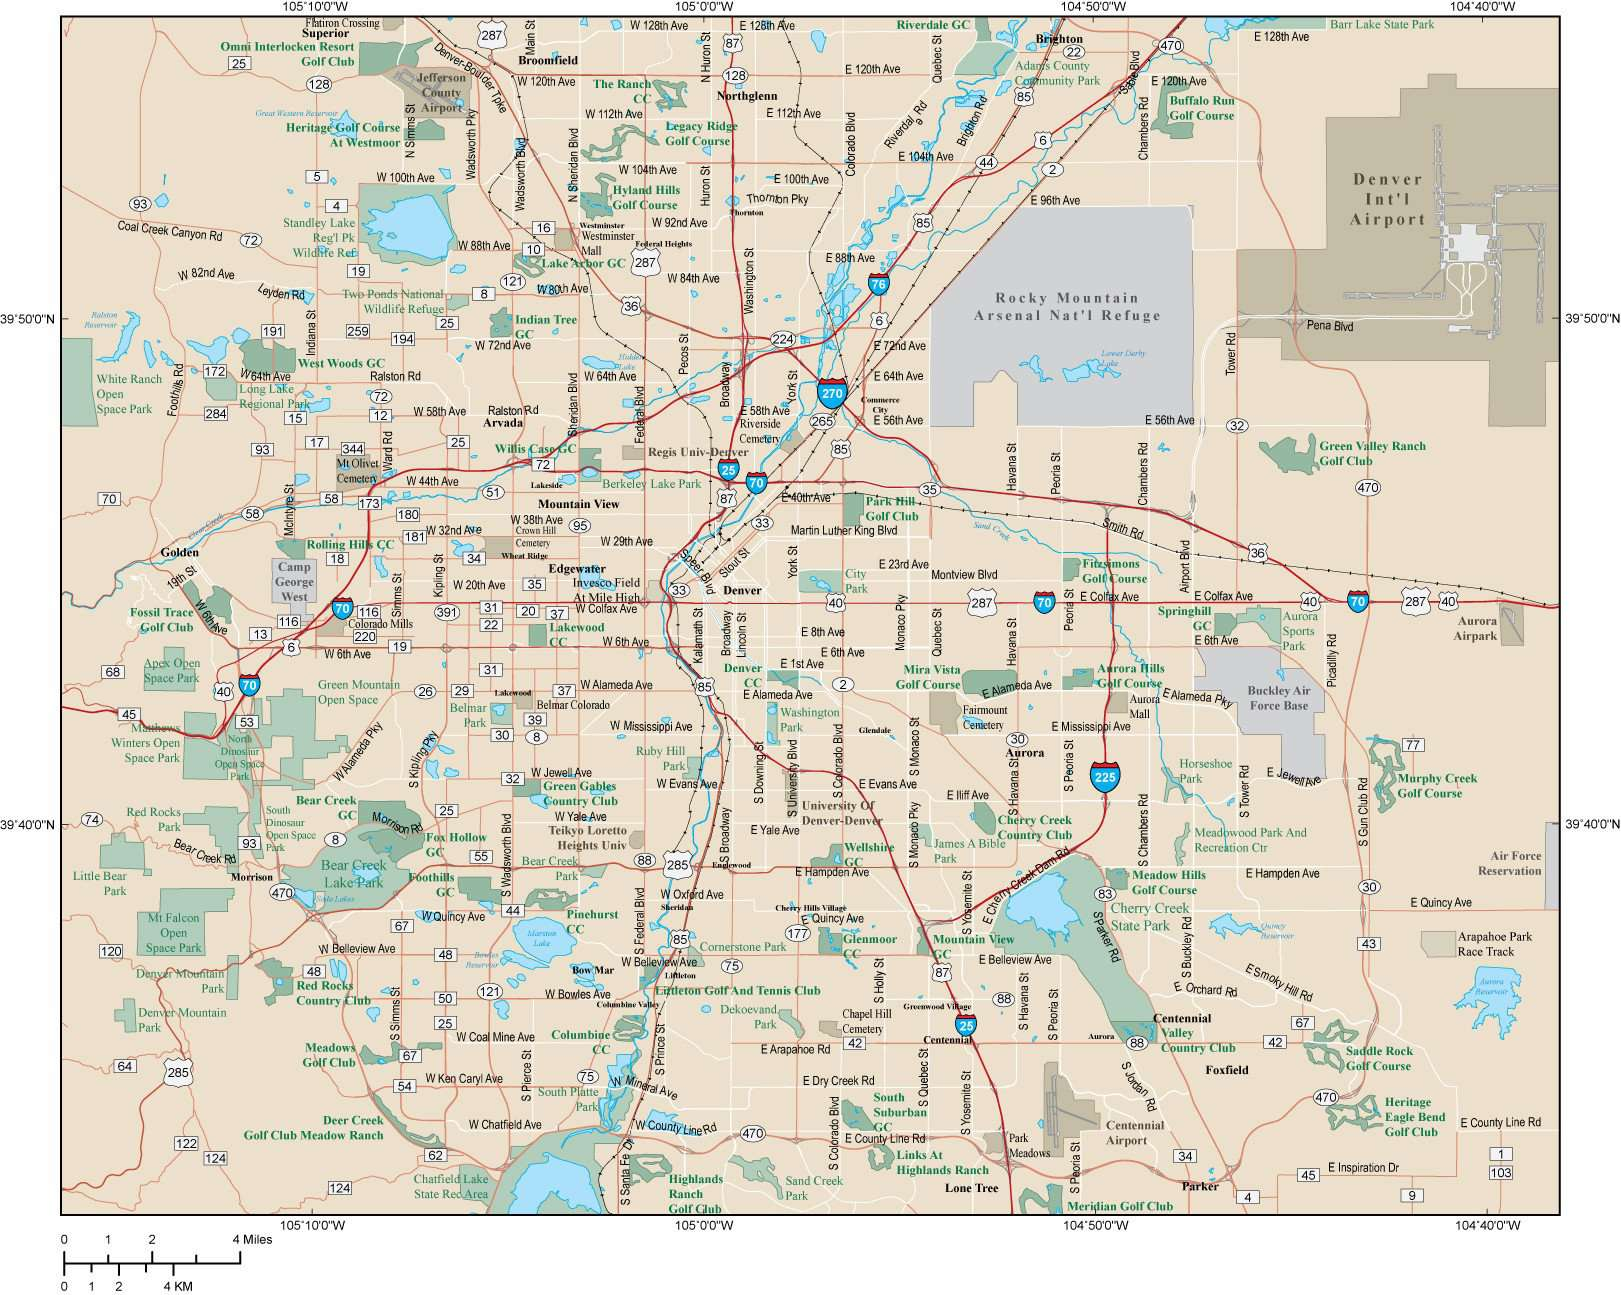 Denver CO Map - Metro Area - 918 square miles - with Major Roads